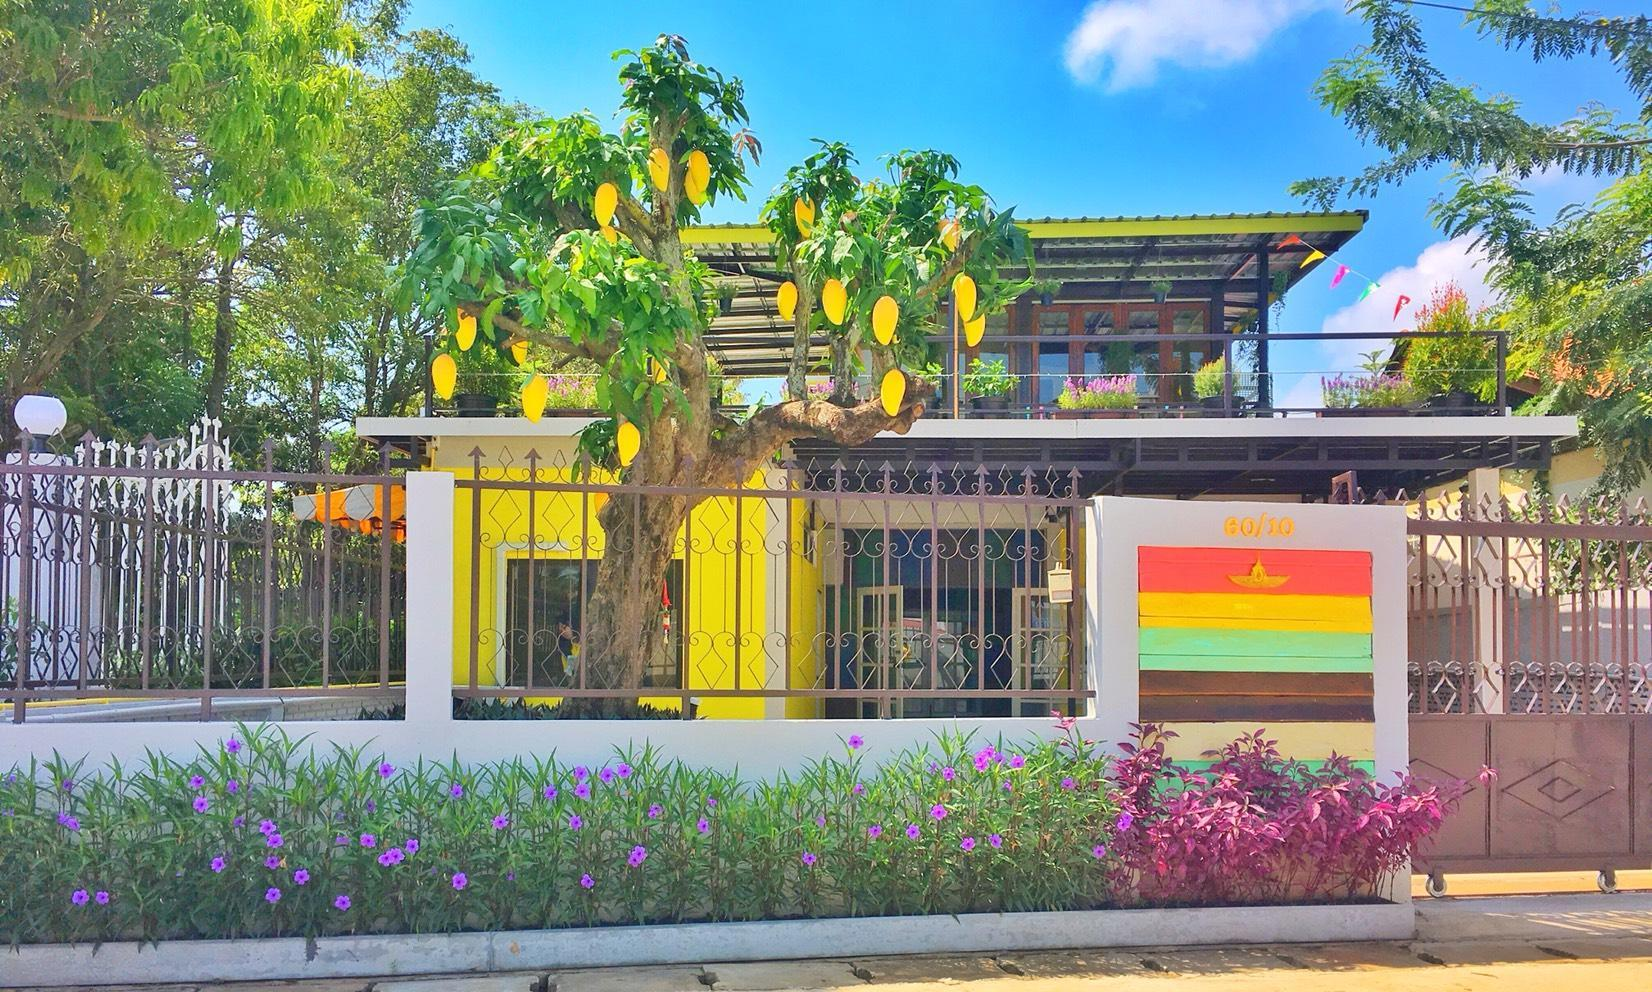 Peaceful And Colorful Bangalow In Town Along River